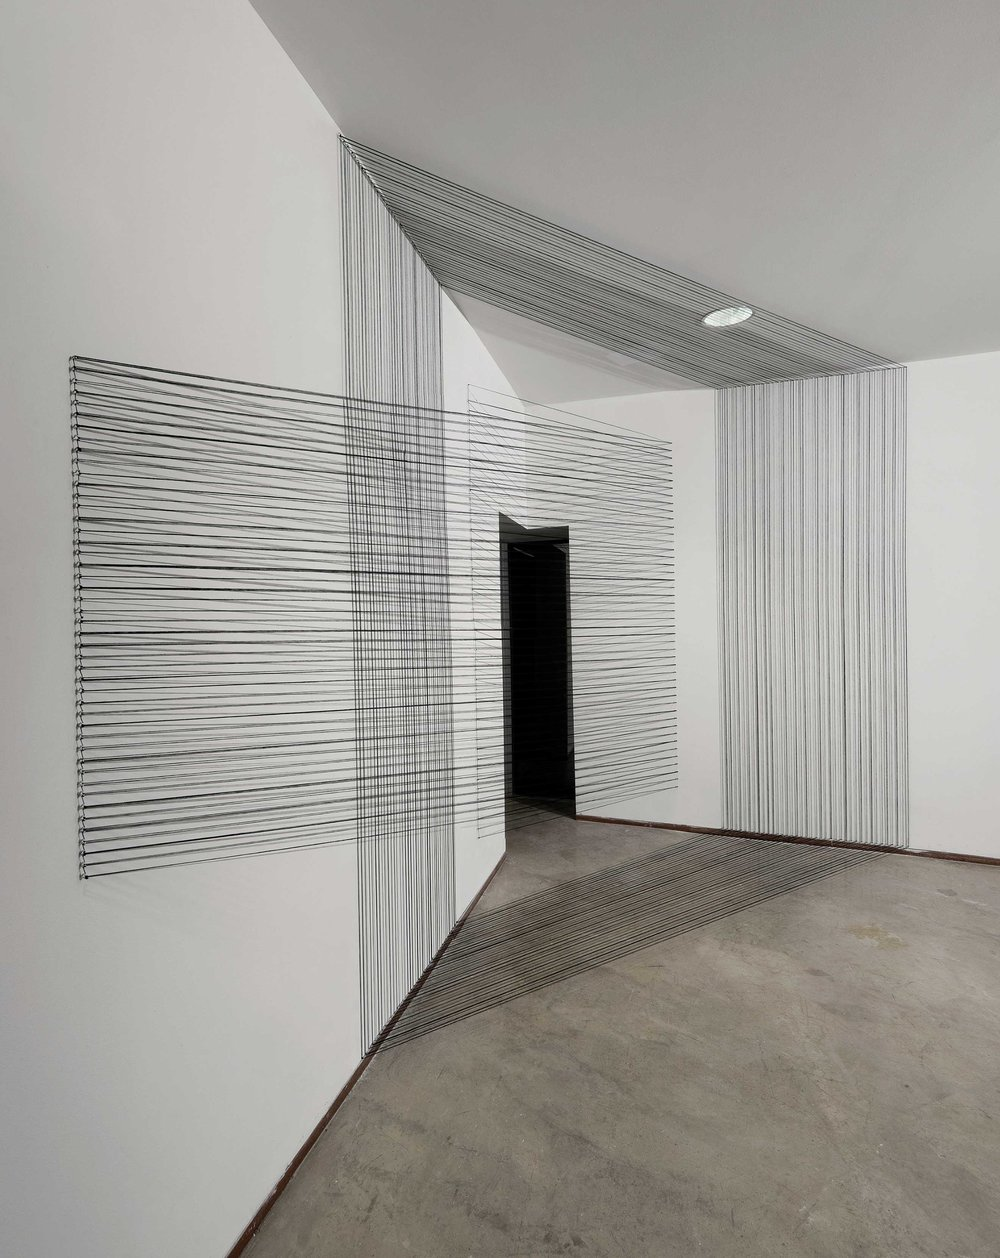 08.EunHyeKang_within-and-without_Cotton-Yarn_380x255x305(cm)_2012.jpg